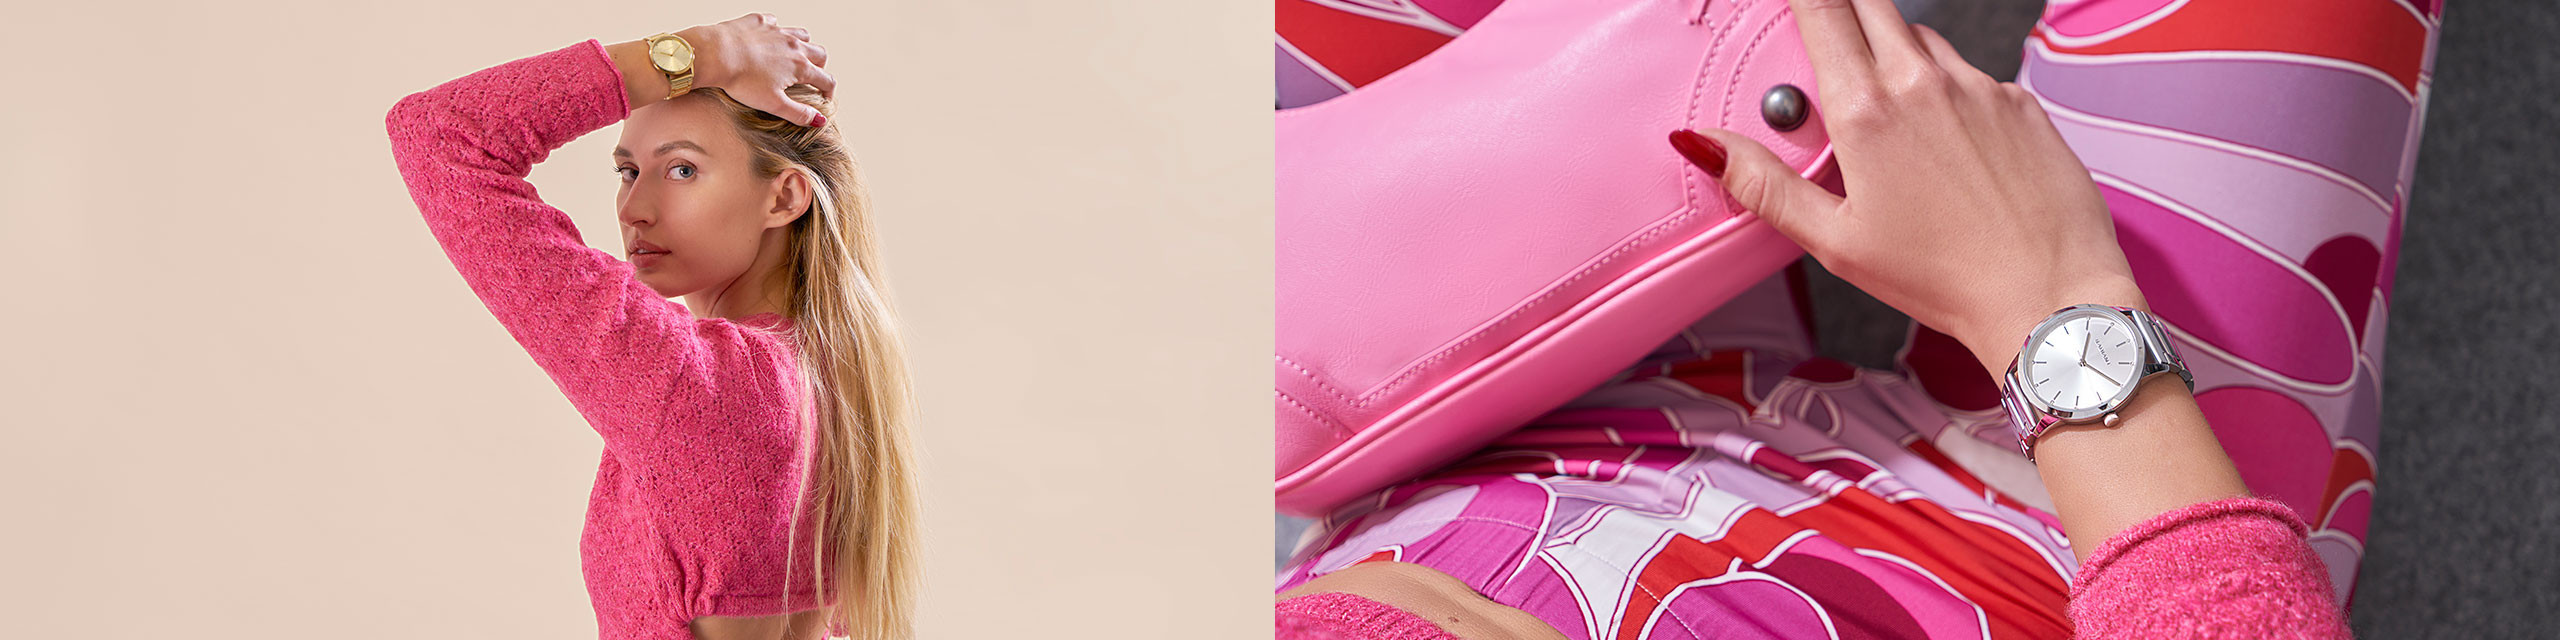 Relojes de mujer ▷ New Collection 2021 - Radiant España